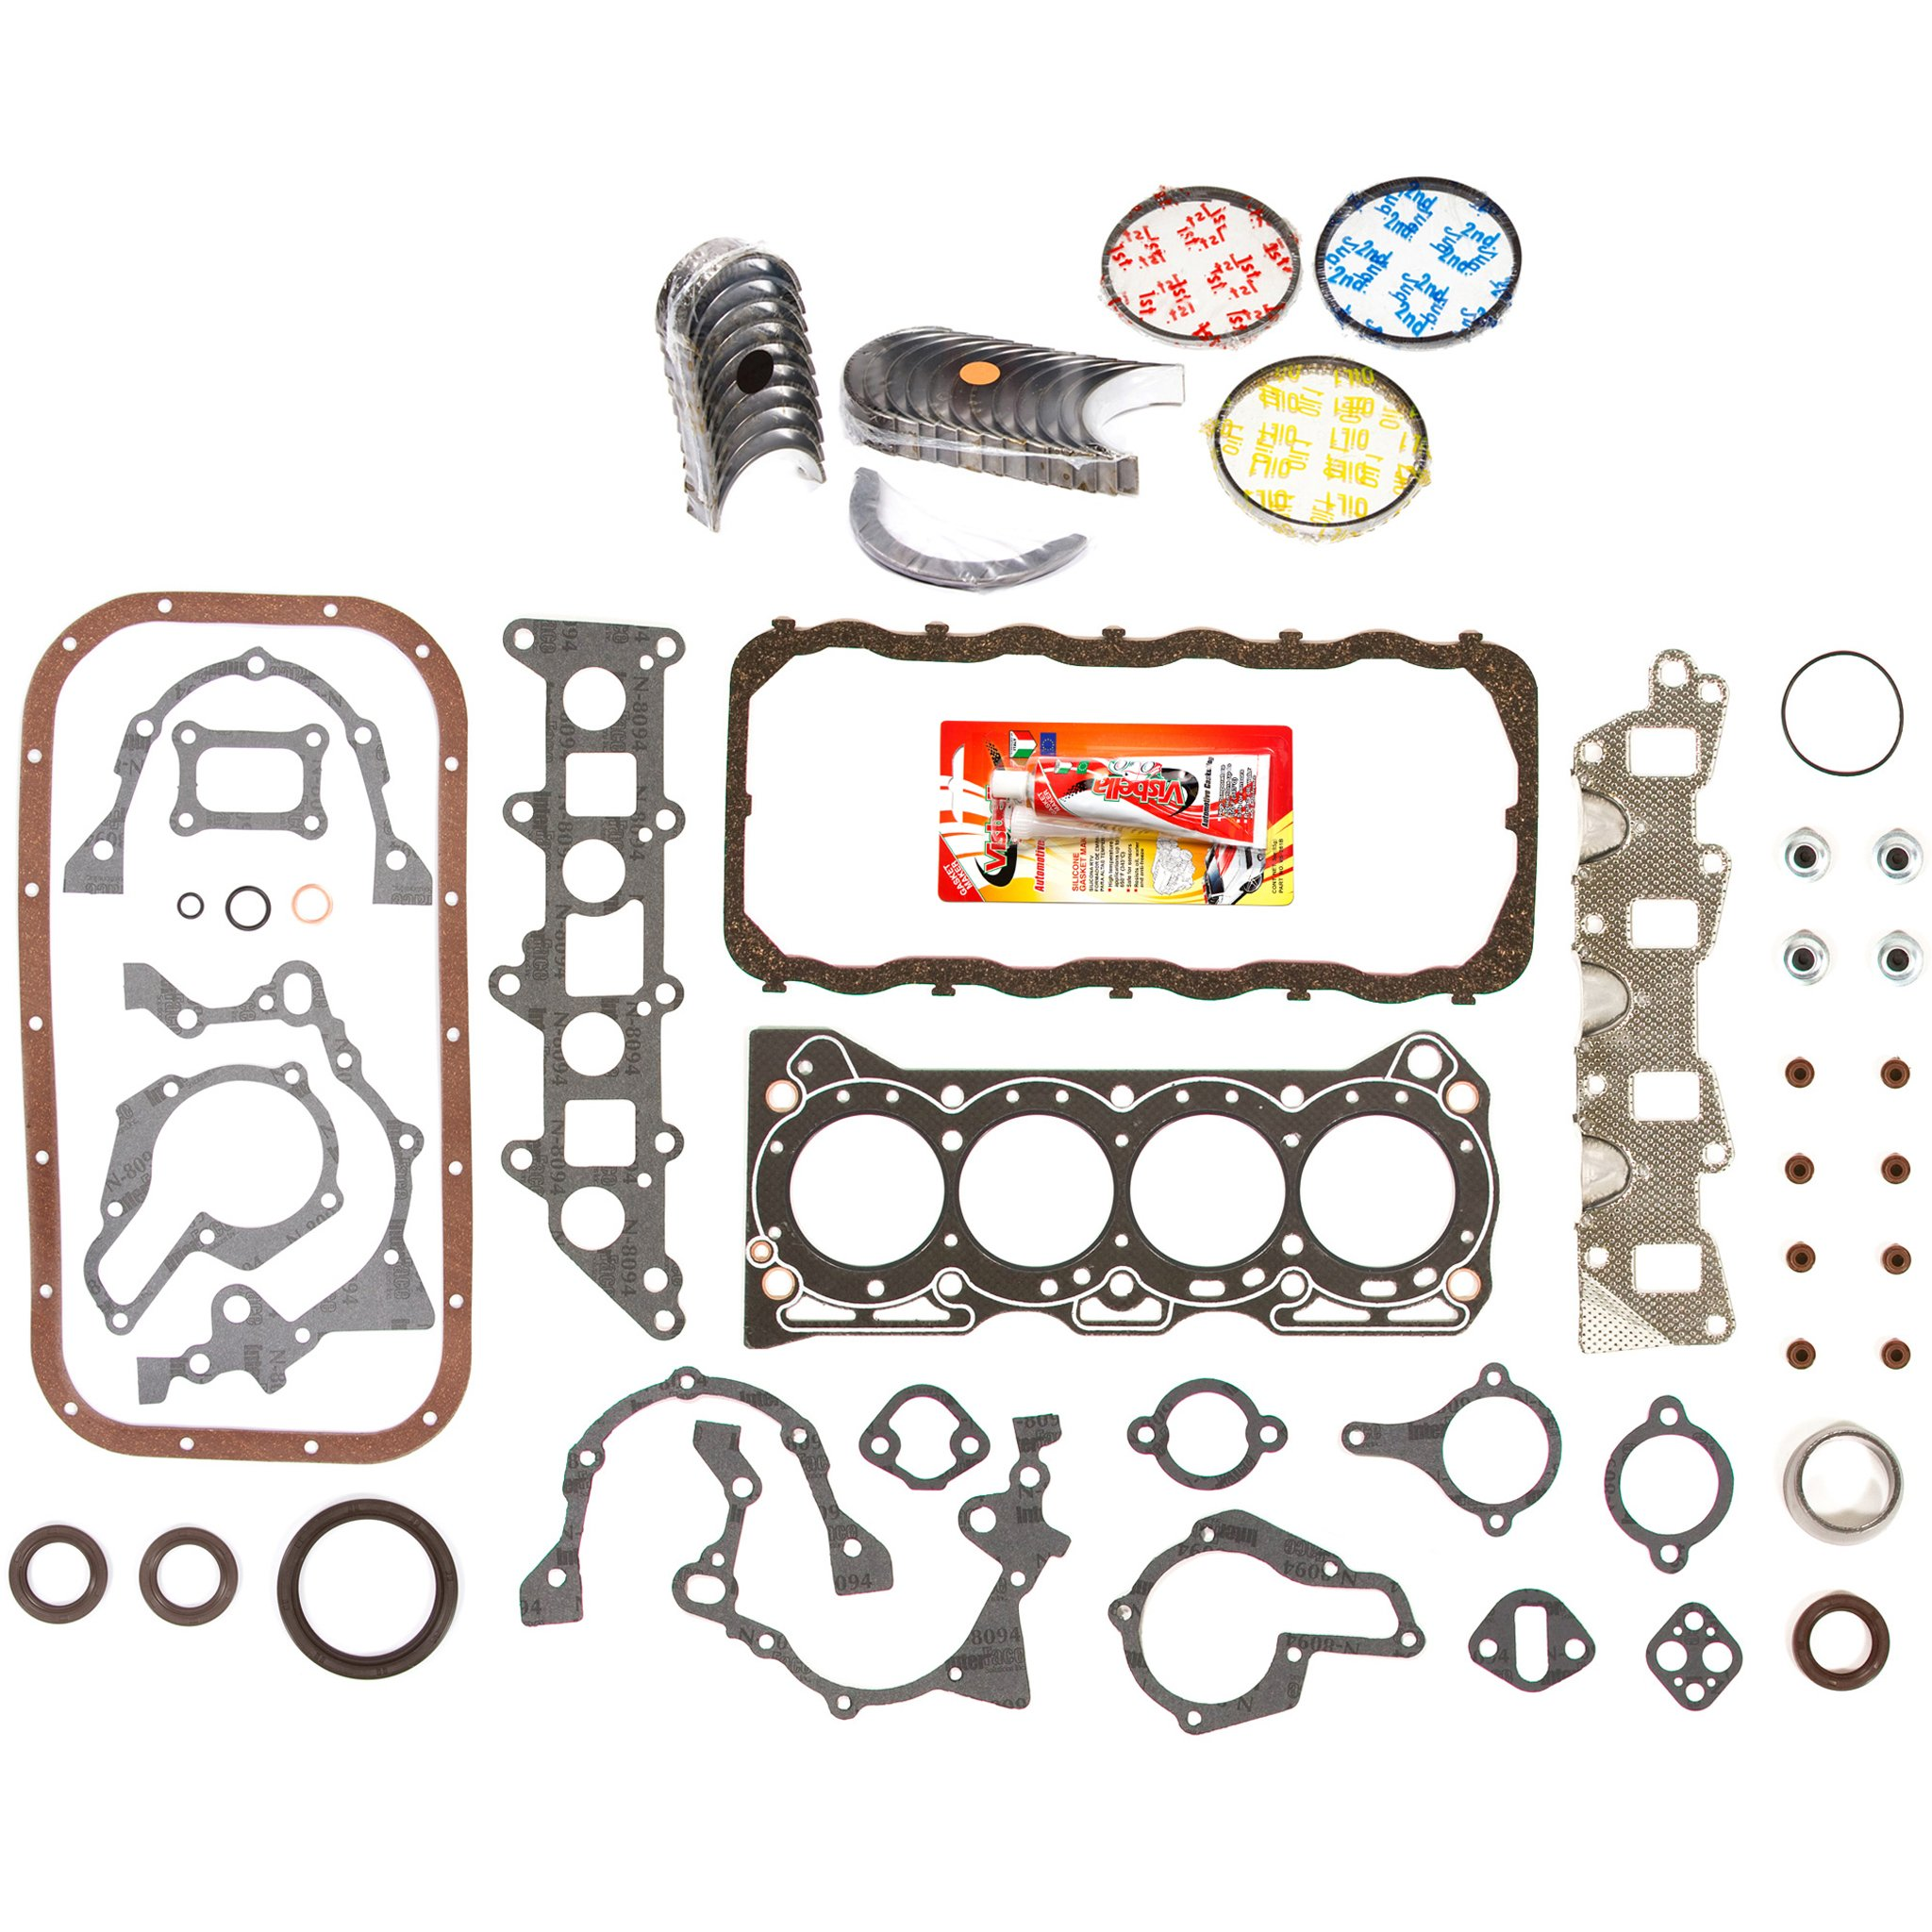 Domestic Gaskets Engine Rering Kit FSBRR8000EVE\0\0\0 86-95 Suzuki Samurai Sidekick Swift 1.3 SOHC G13A Full Gasket Set, Standard Size Main Rod Bearings, Standard Size Piston Rings